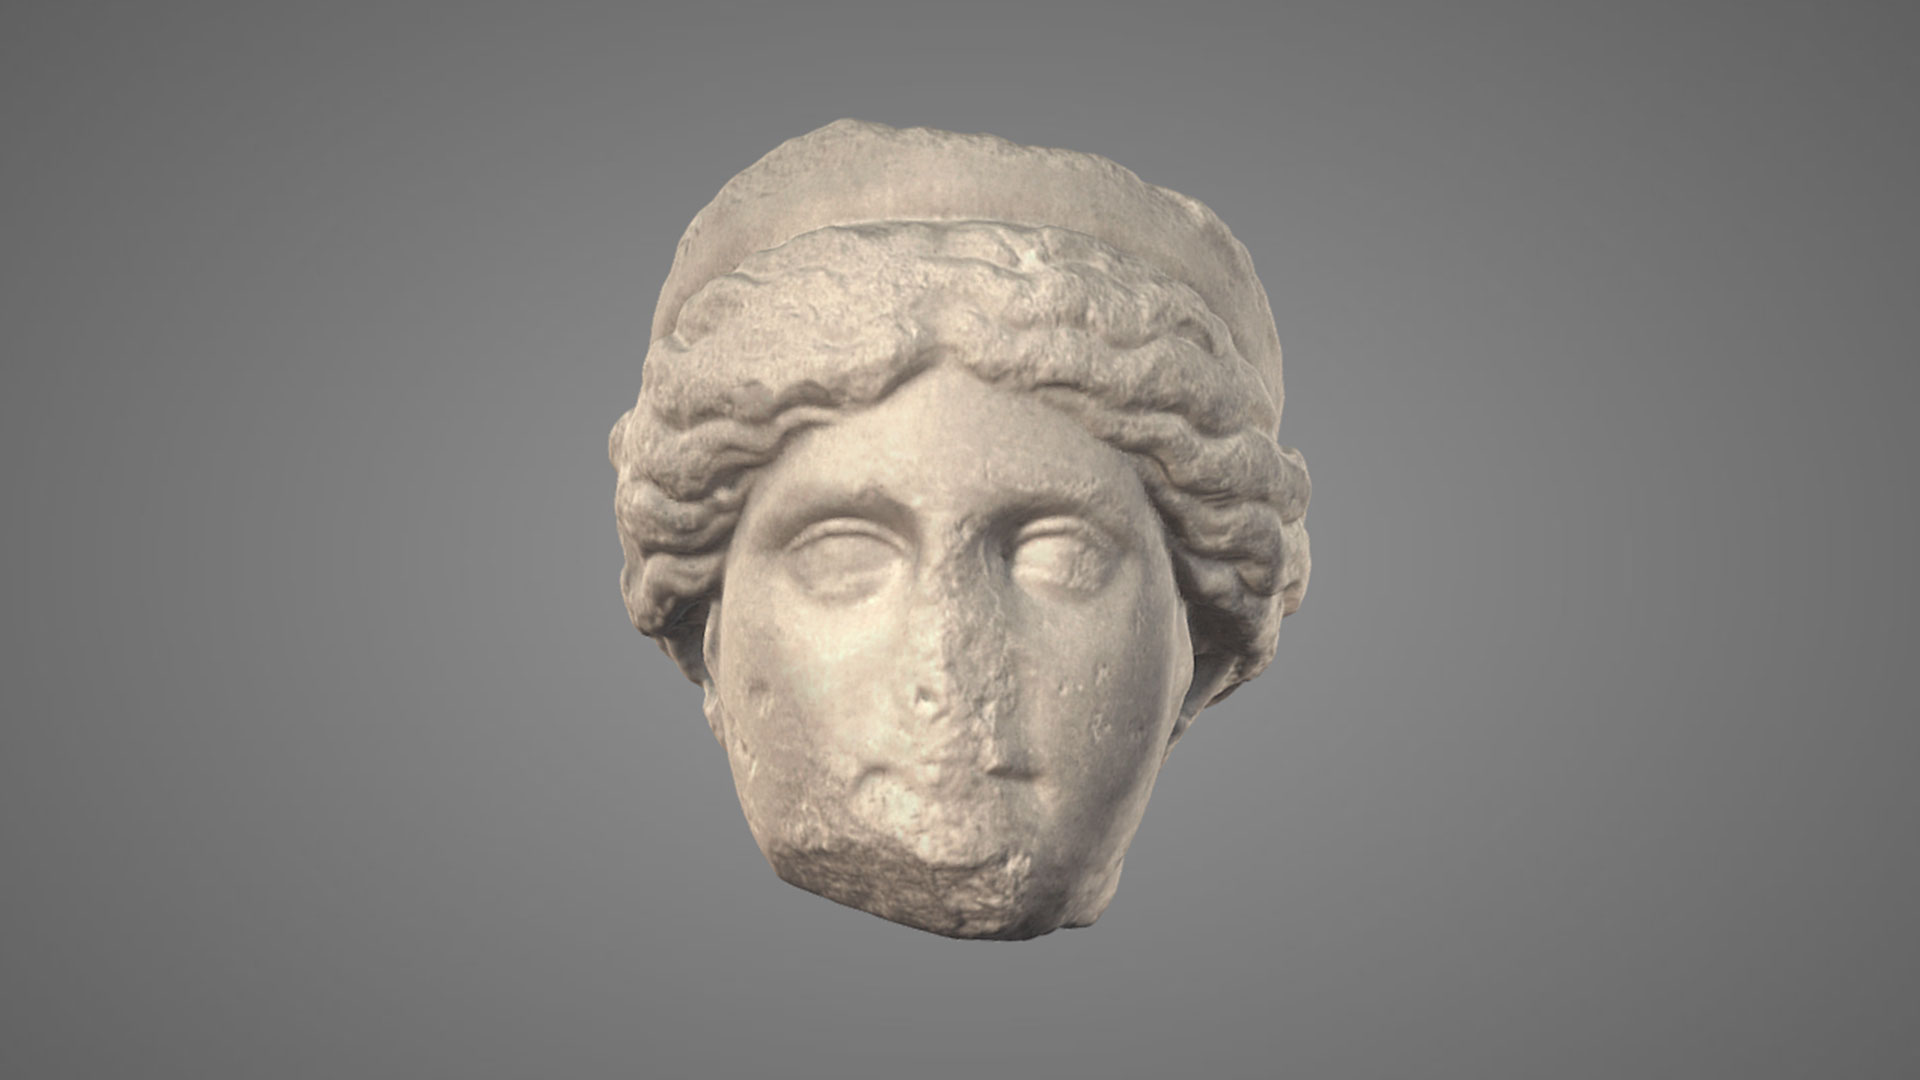 Testa Femminile Diademata In Marmo - 3D Model